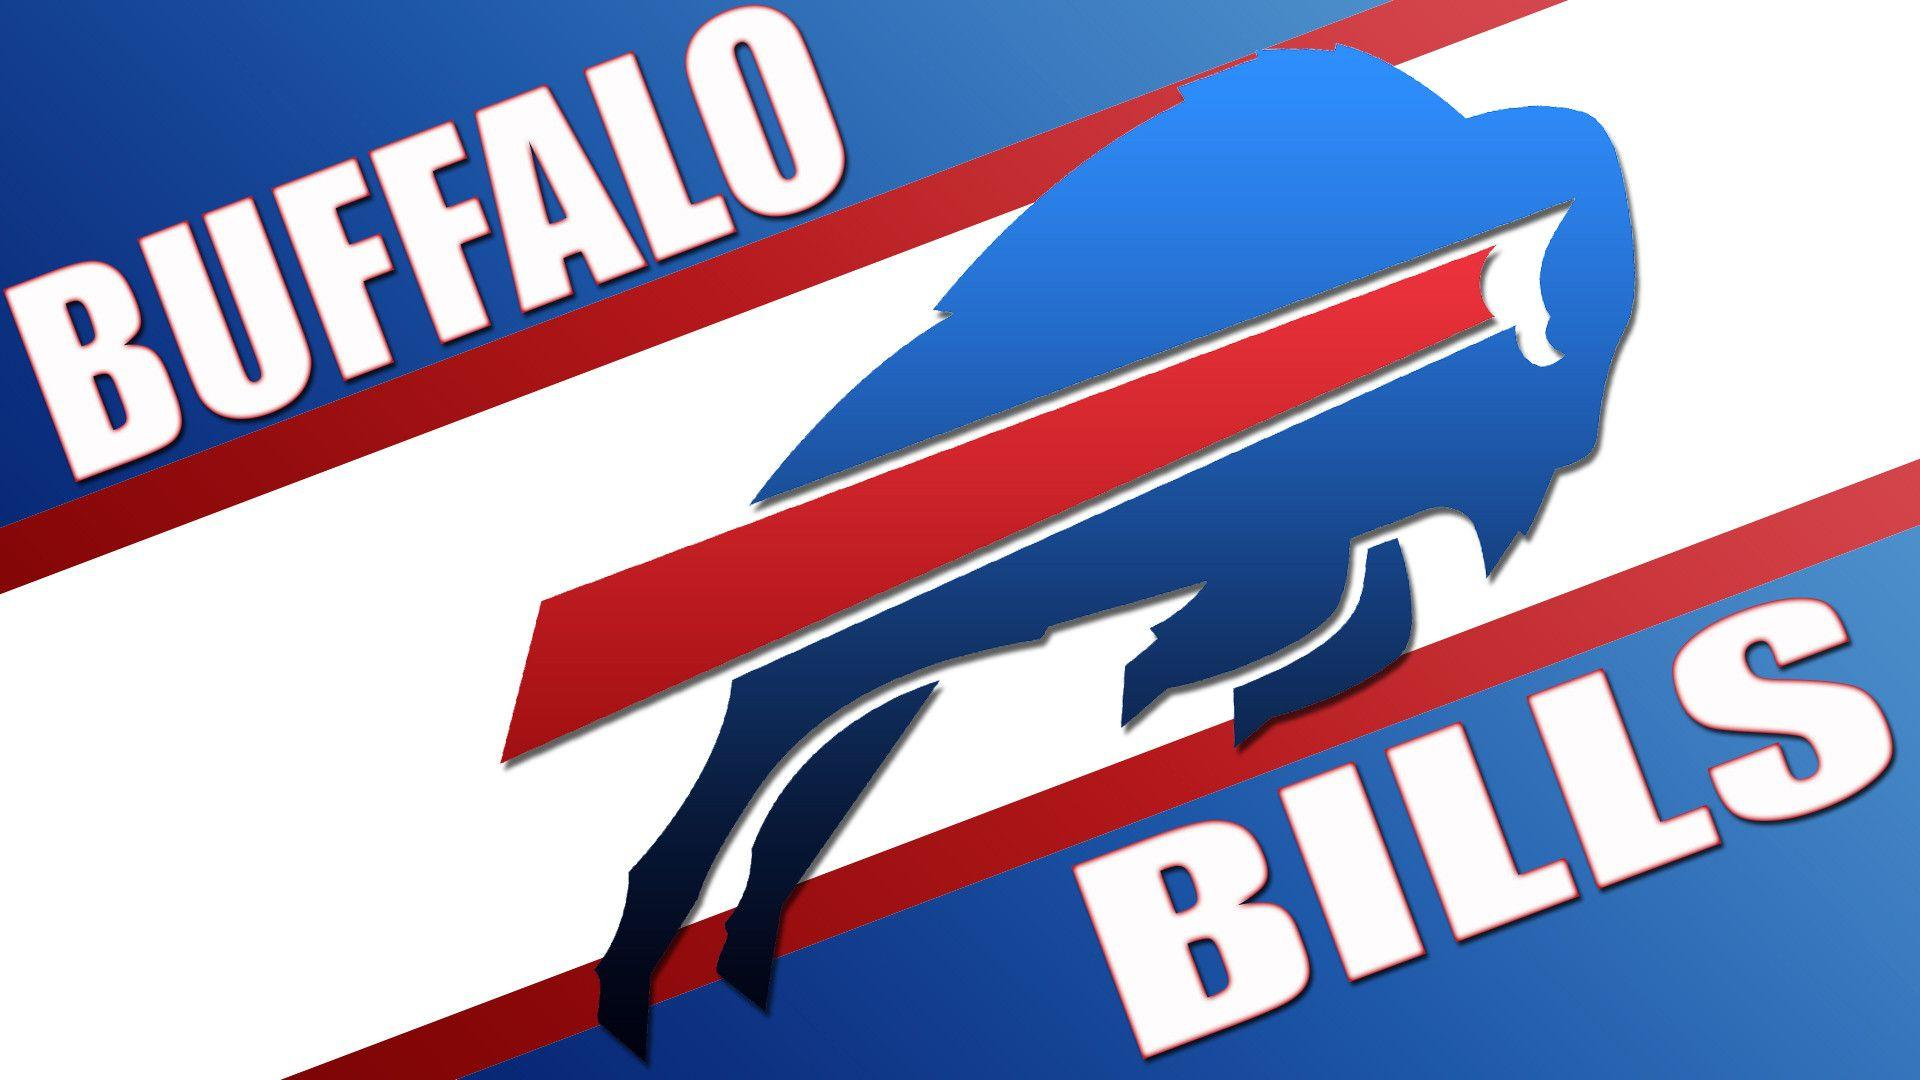 Season summary The season is notable for Buffalos first playoff game in this year known as The Comeback in which the Bills down 353 ended up winning in